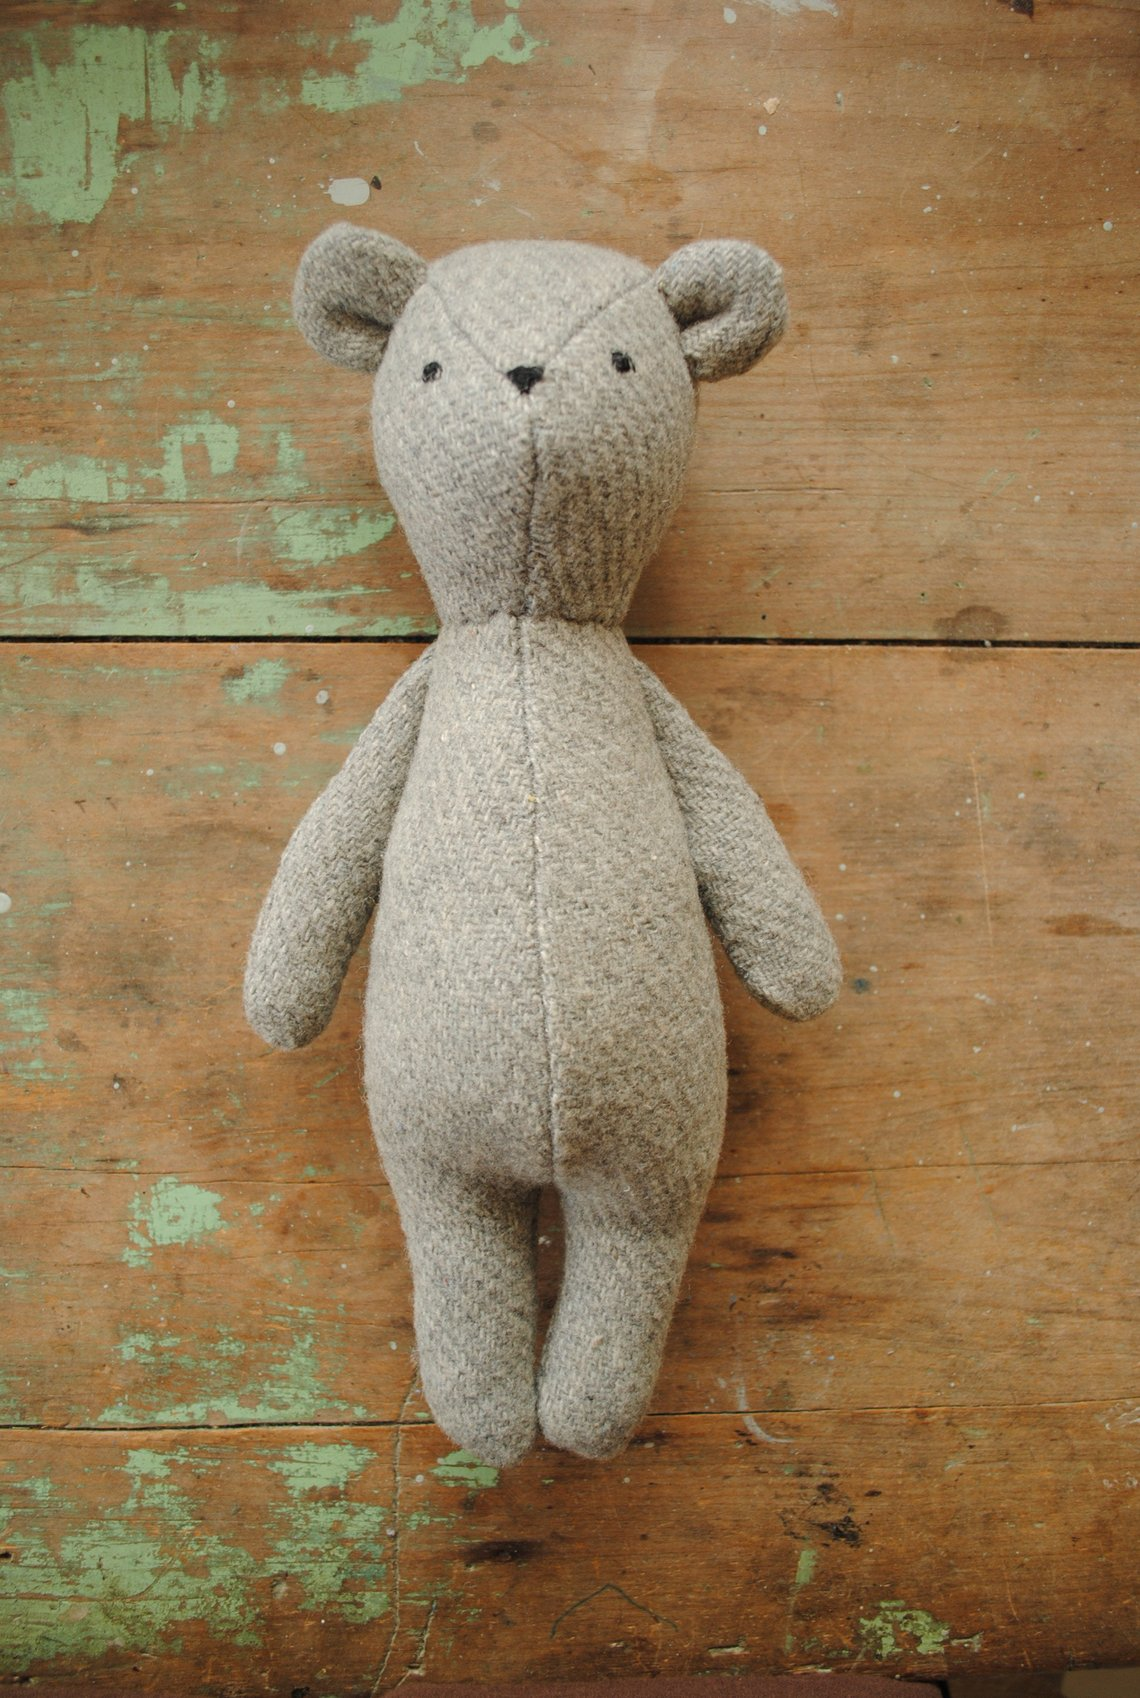 20+ of the cutest teddy bear sewing patterns - Swoodson Says